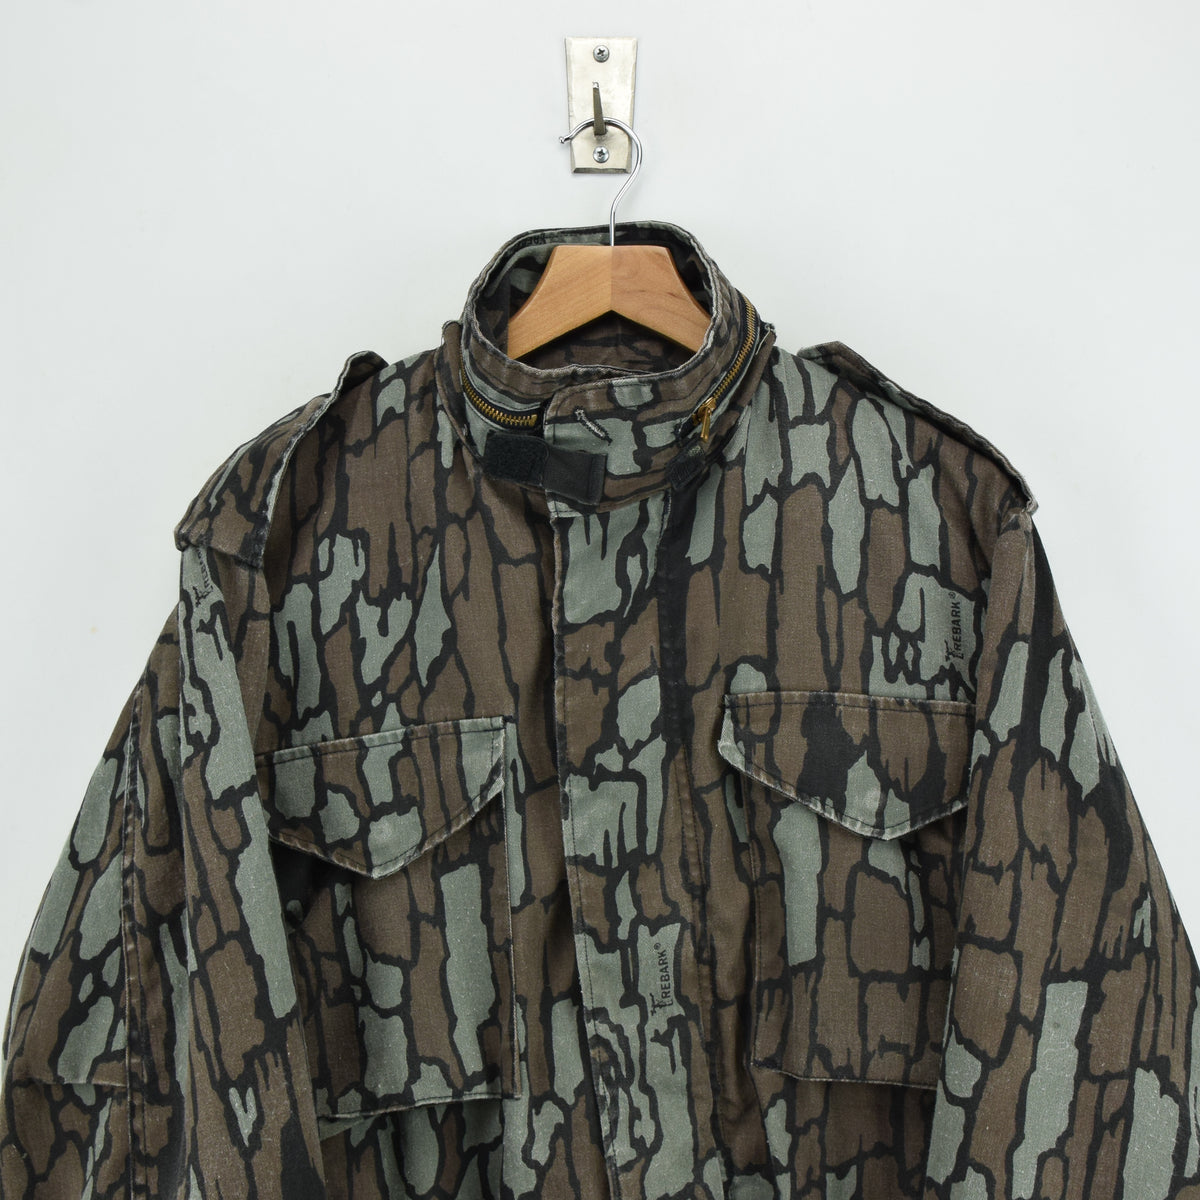 Vintage M-65 Alpha Industries Trebark Camouflage Field Coat Army Jacket M Reg chest